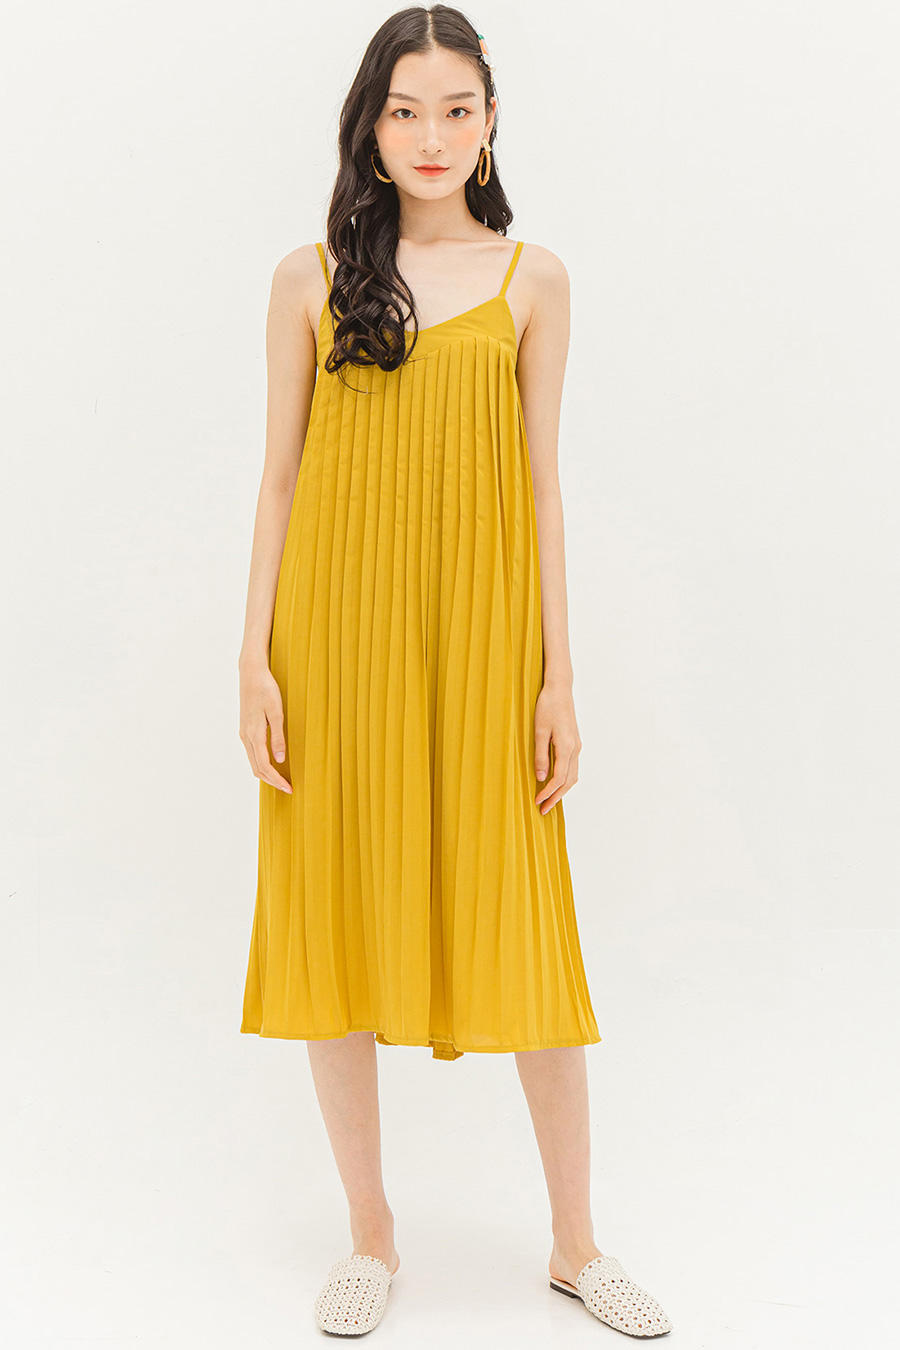 LOUISA DRESS - MARIGOLD